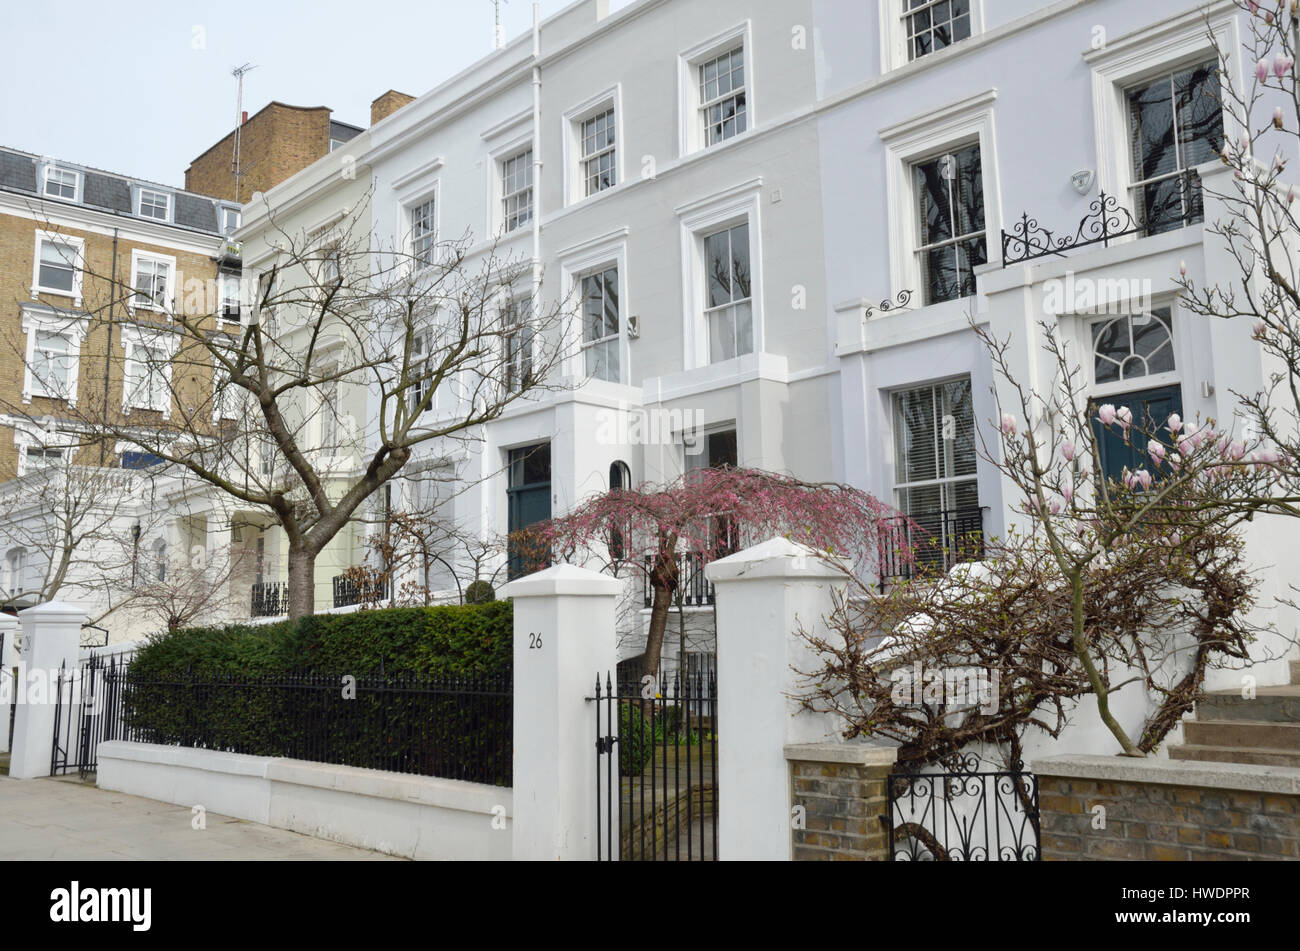 Notting Hill Ladbroke Grove in ladbroke grove high resolution stock photography and